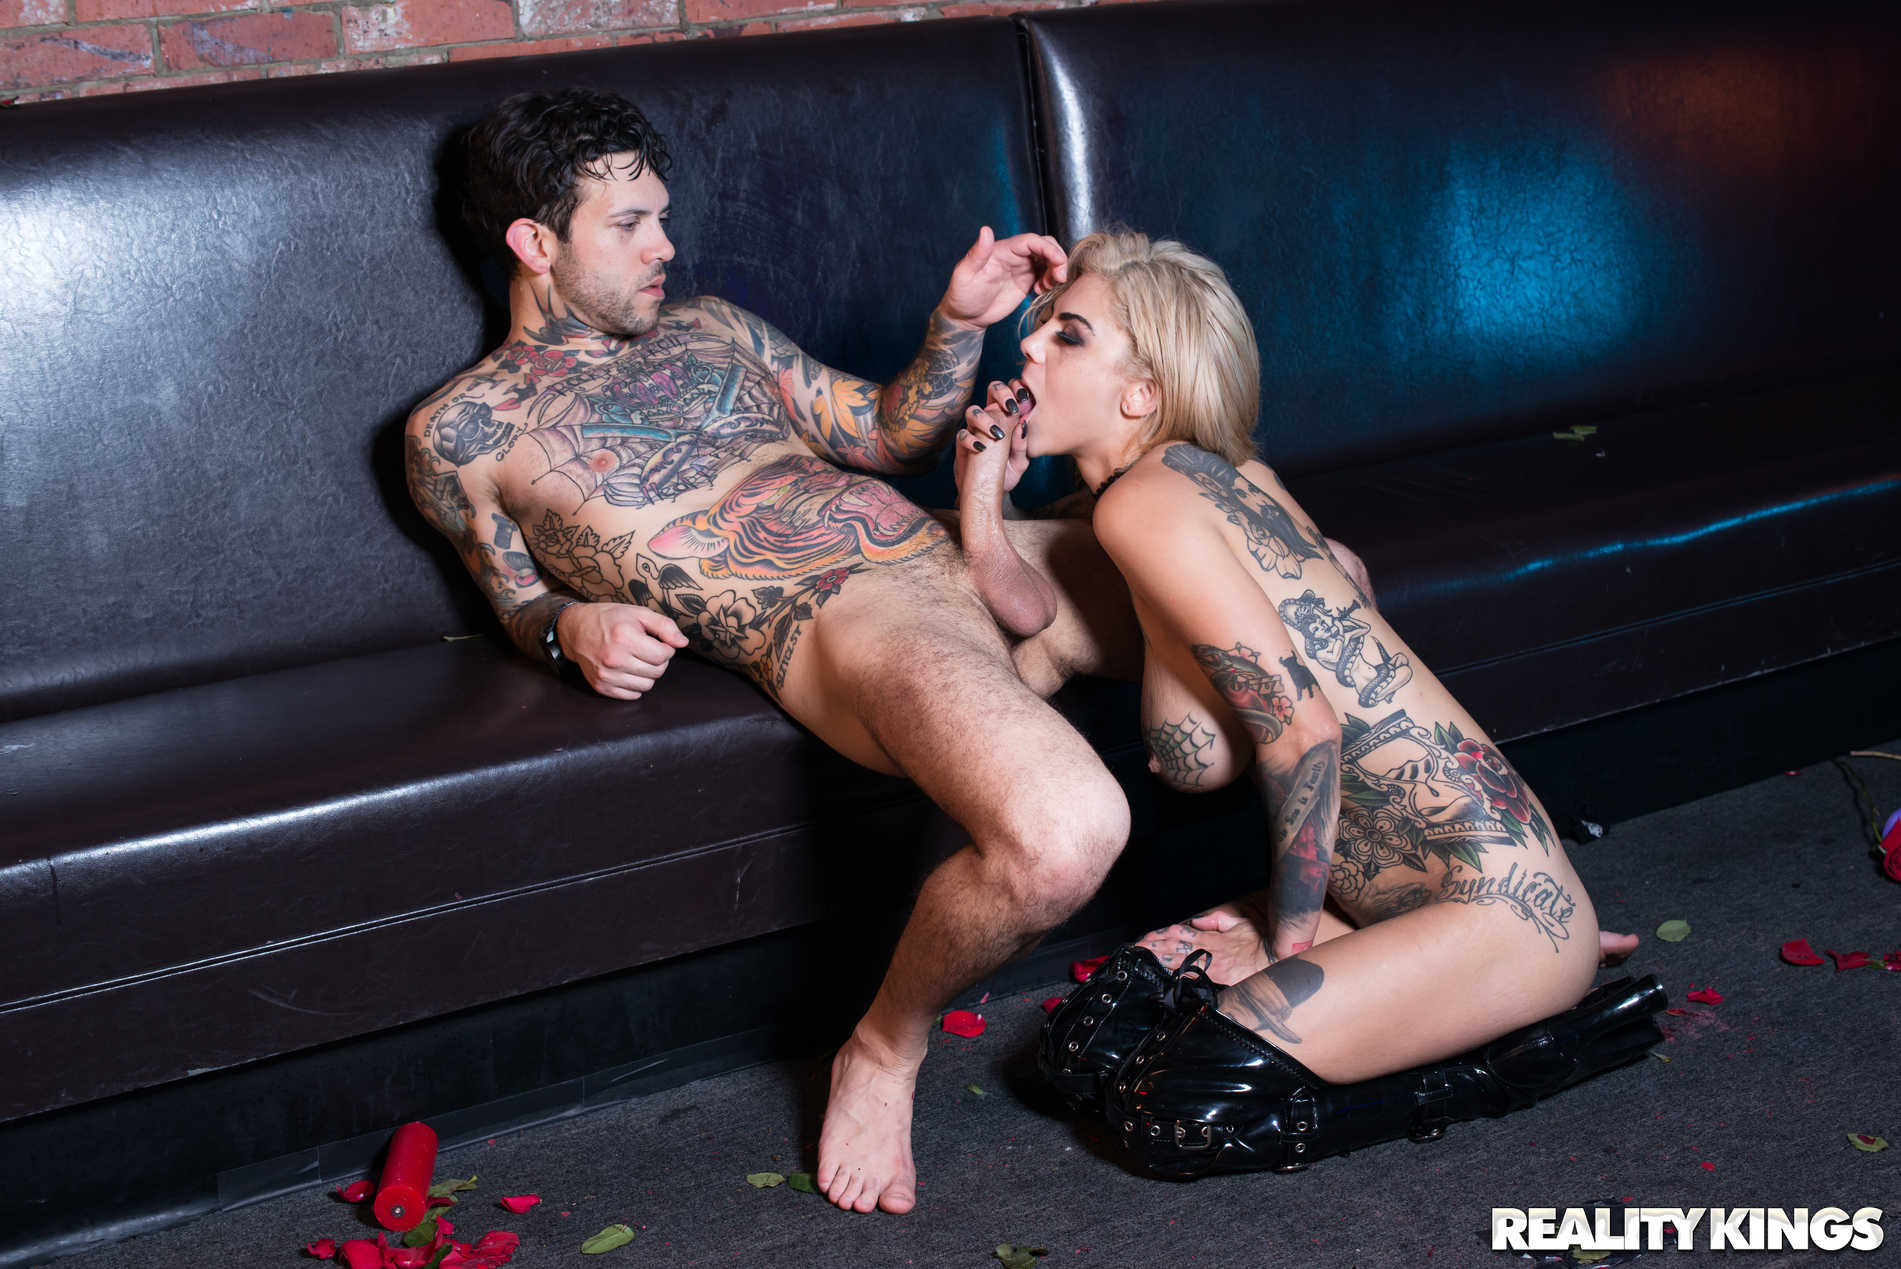 Reality Kings 'Pitch Black Pole Dancer' starring Bonnie Rotten (Photo 72)